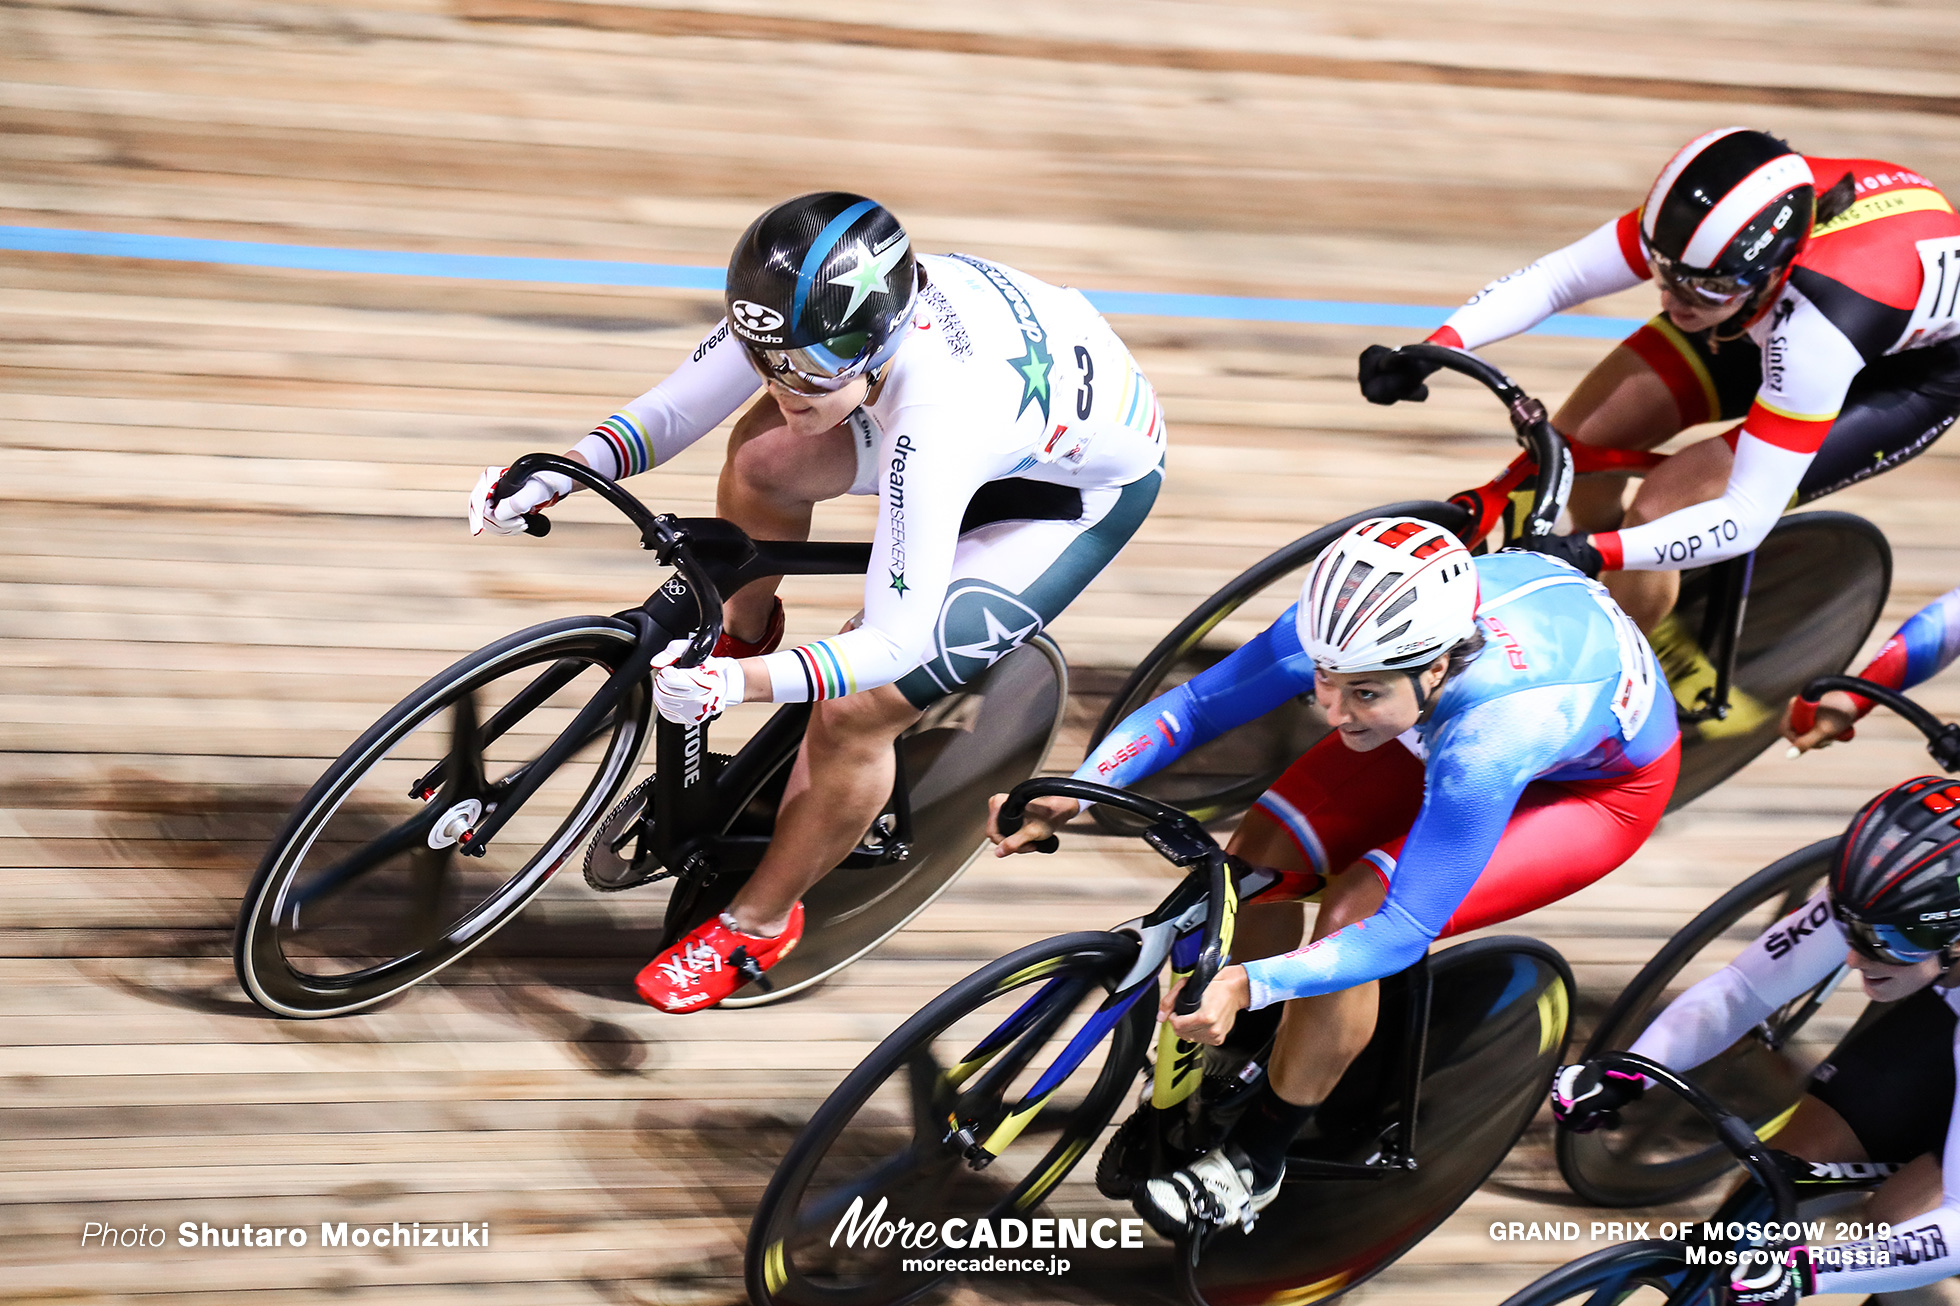 2nd Round / Women's Keirin / GRAND PRIX OF MOSCOW 2019